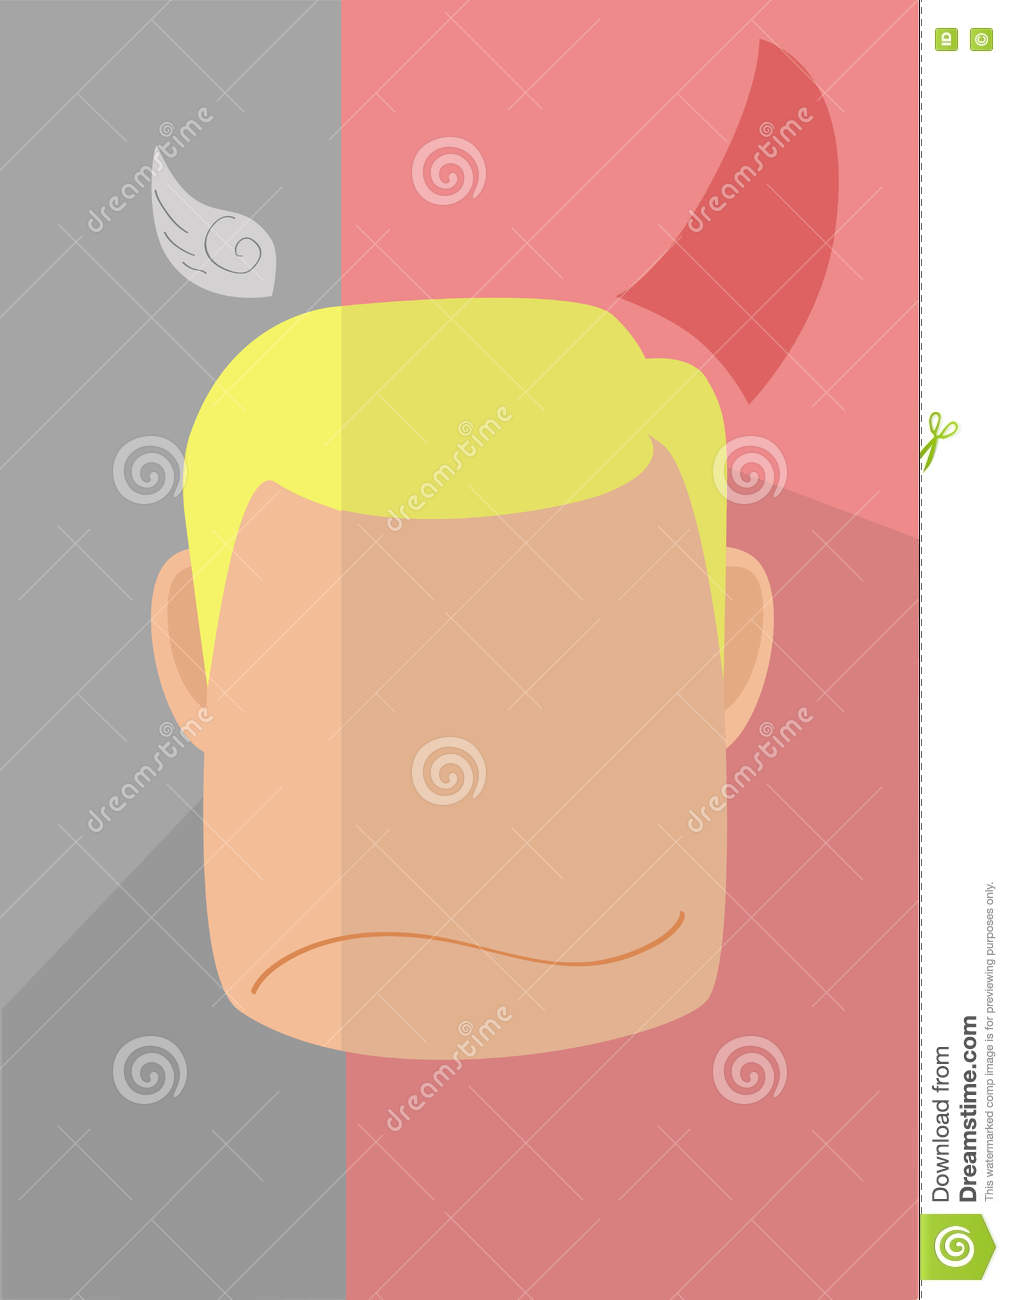 Download Bad Always Win Illustration Stock Illustration   Illustration Of  Graphic, Angel: 79139892